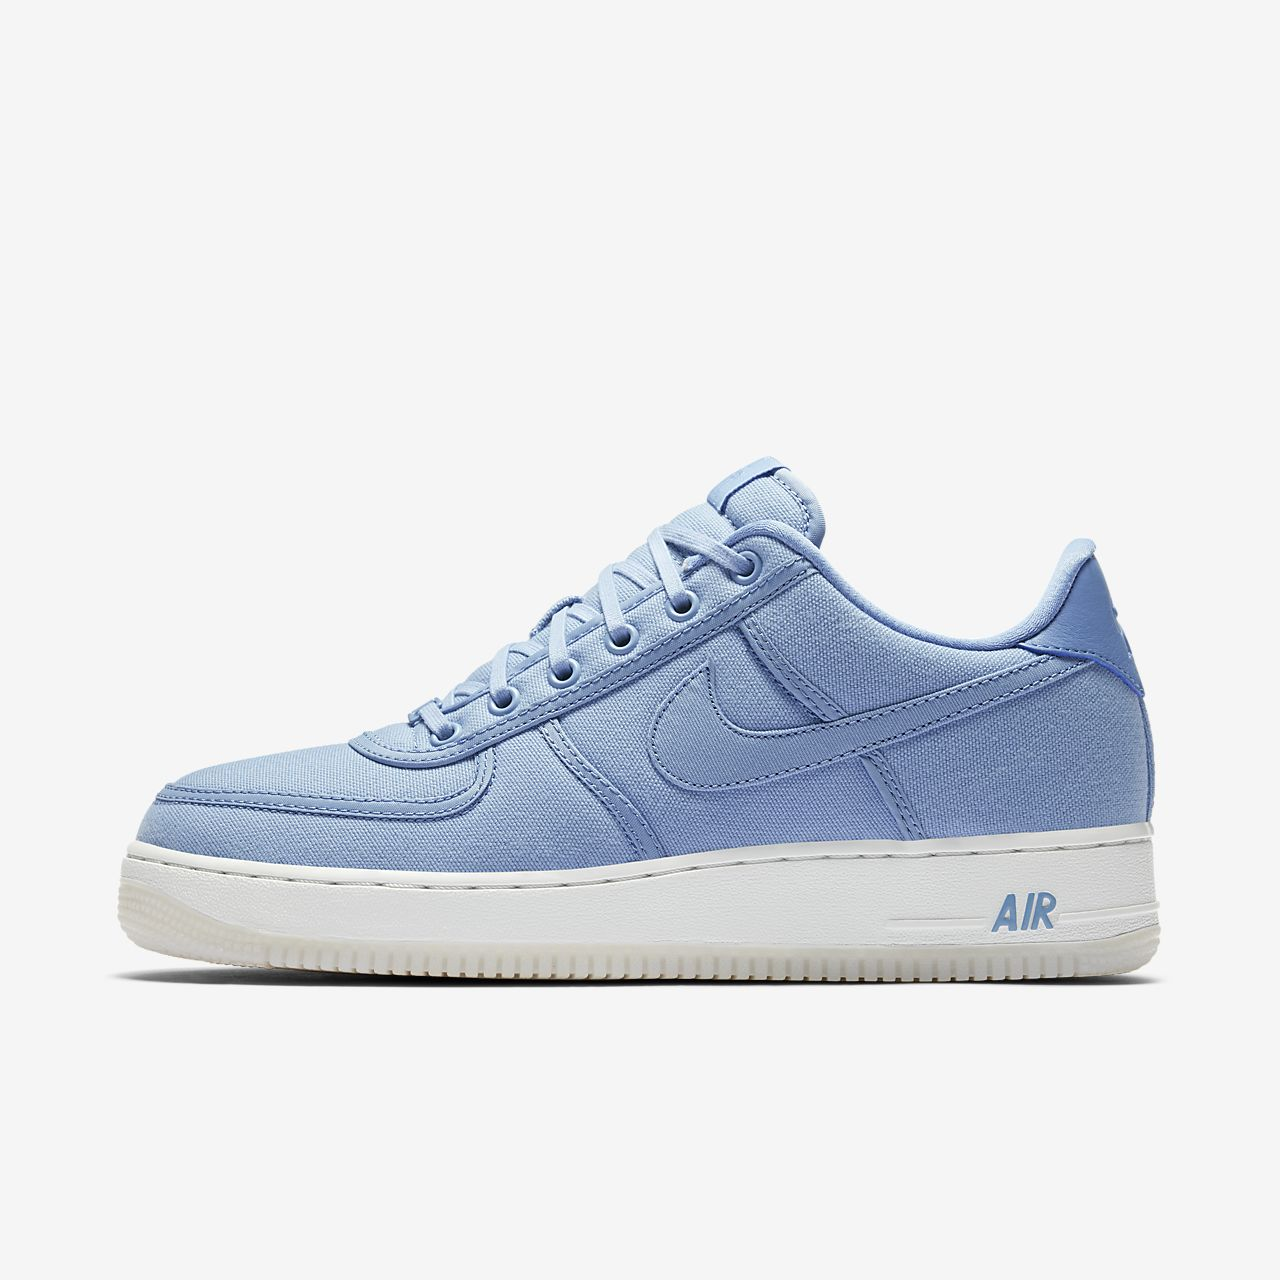 more photos e9192 2271a Nike Air Force 1 Low Retro QS-sko til mænd